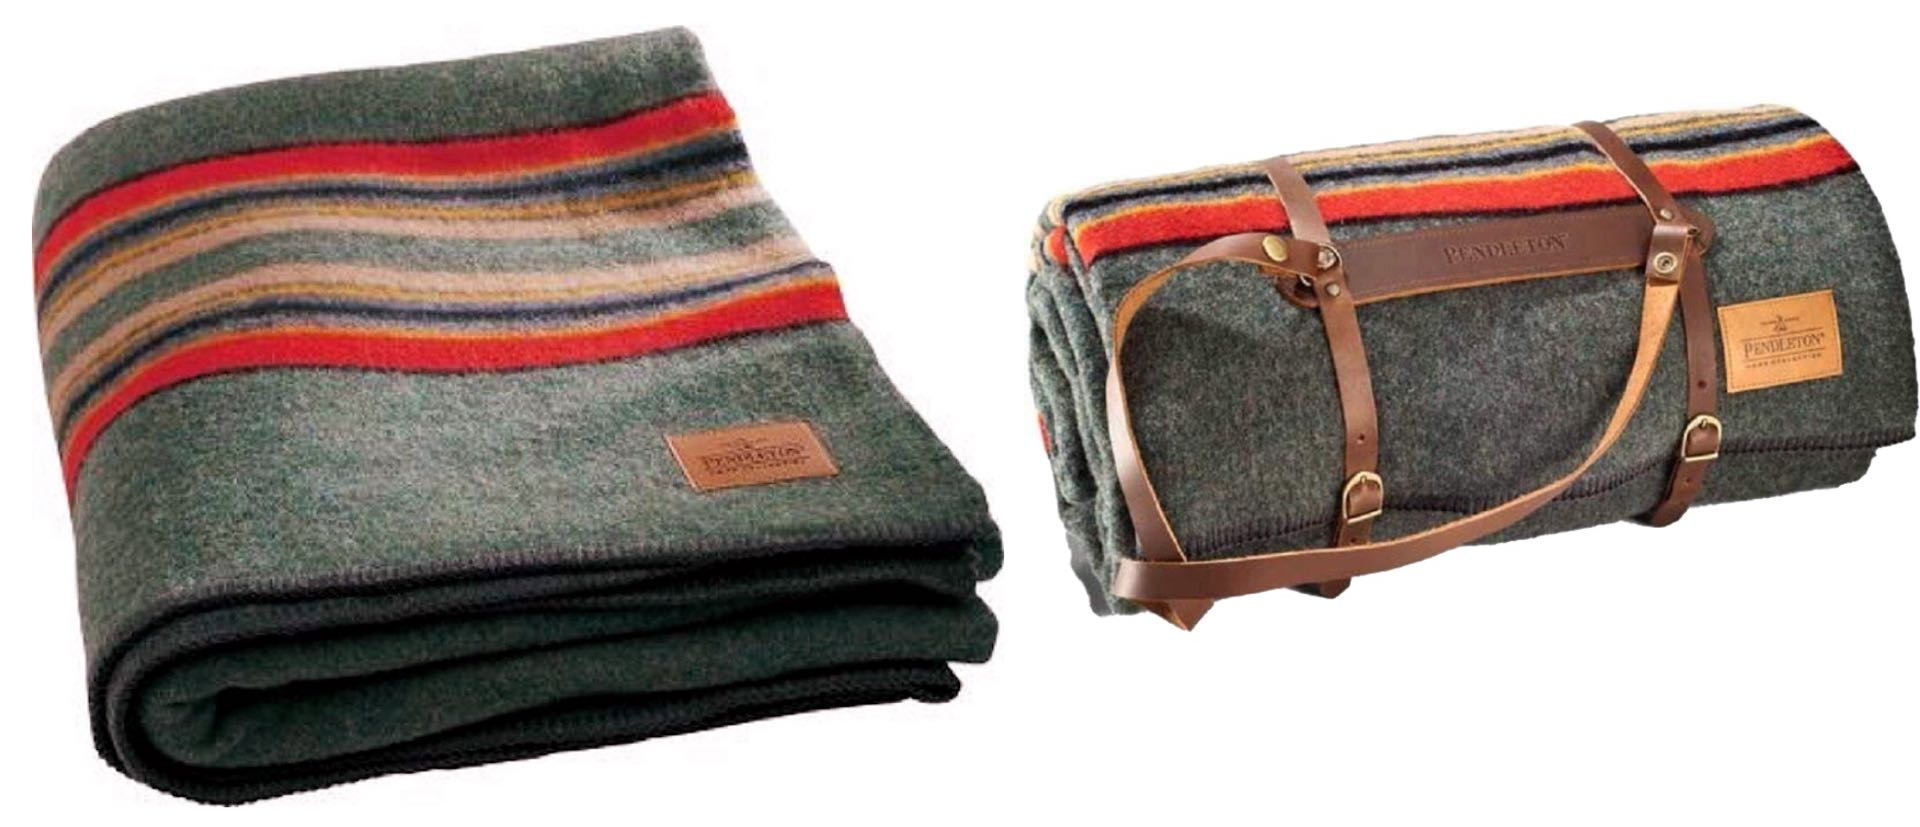 Pendleton wool camp blanket with leather carrier. ($169)